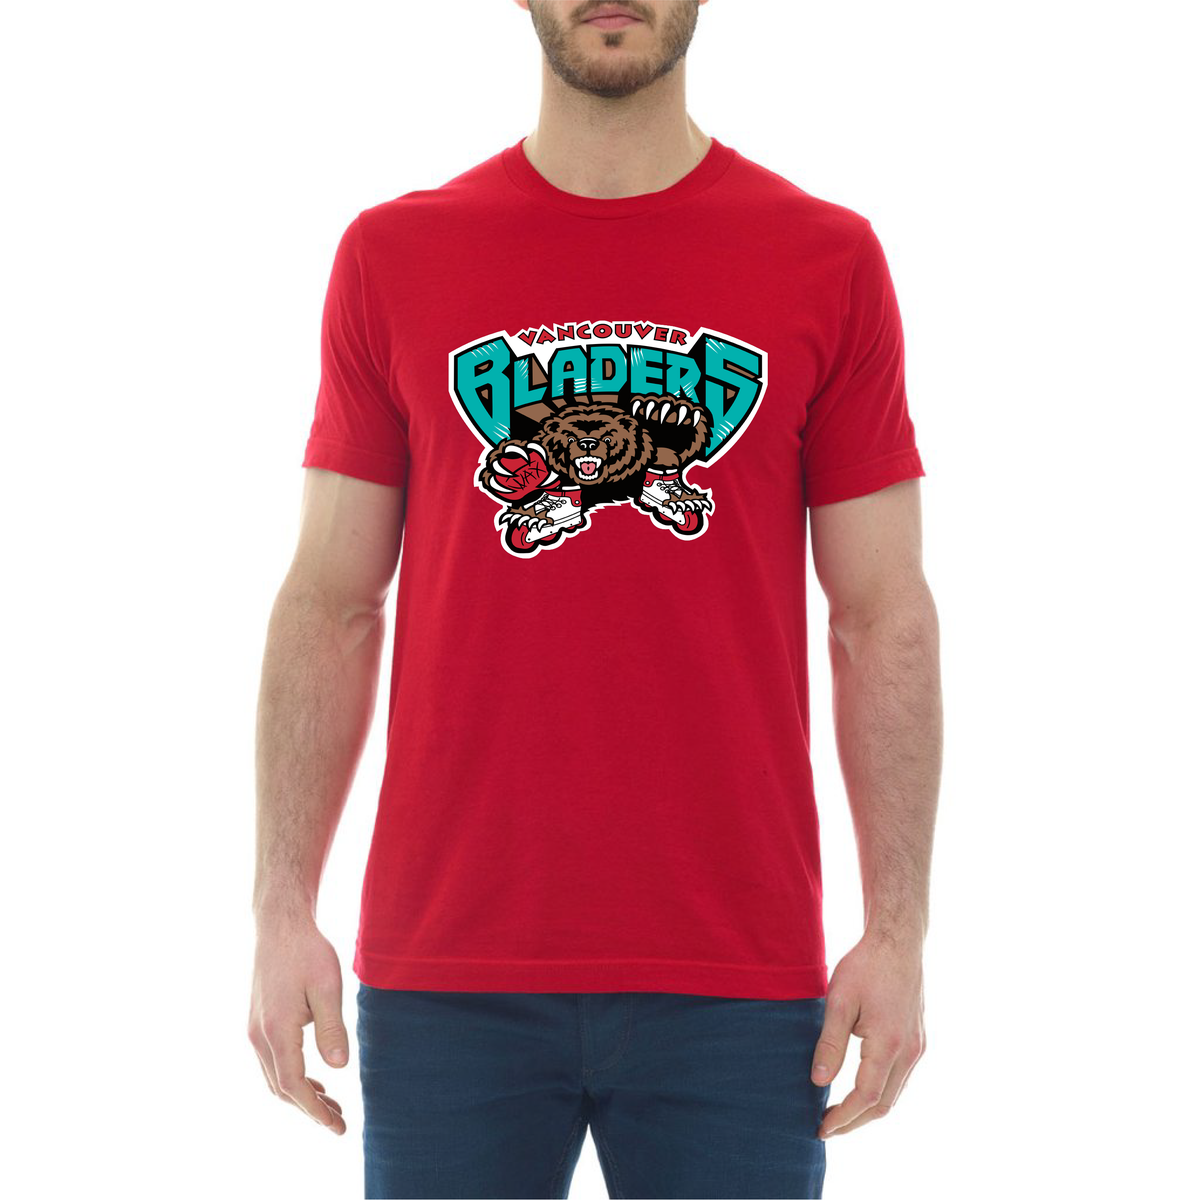 Image of Vancouver Bladers T-Shirt - Railtown Red